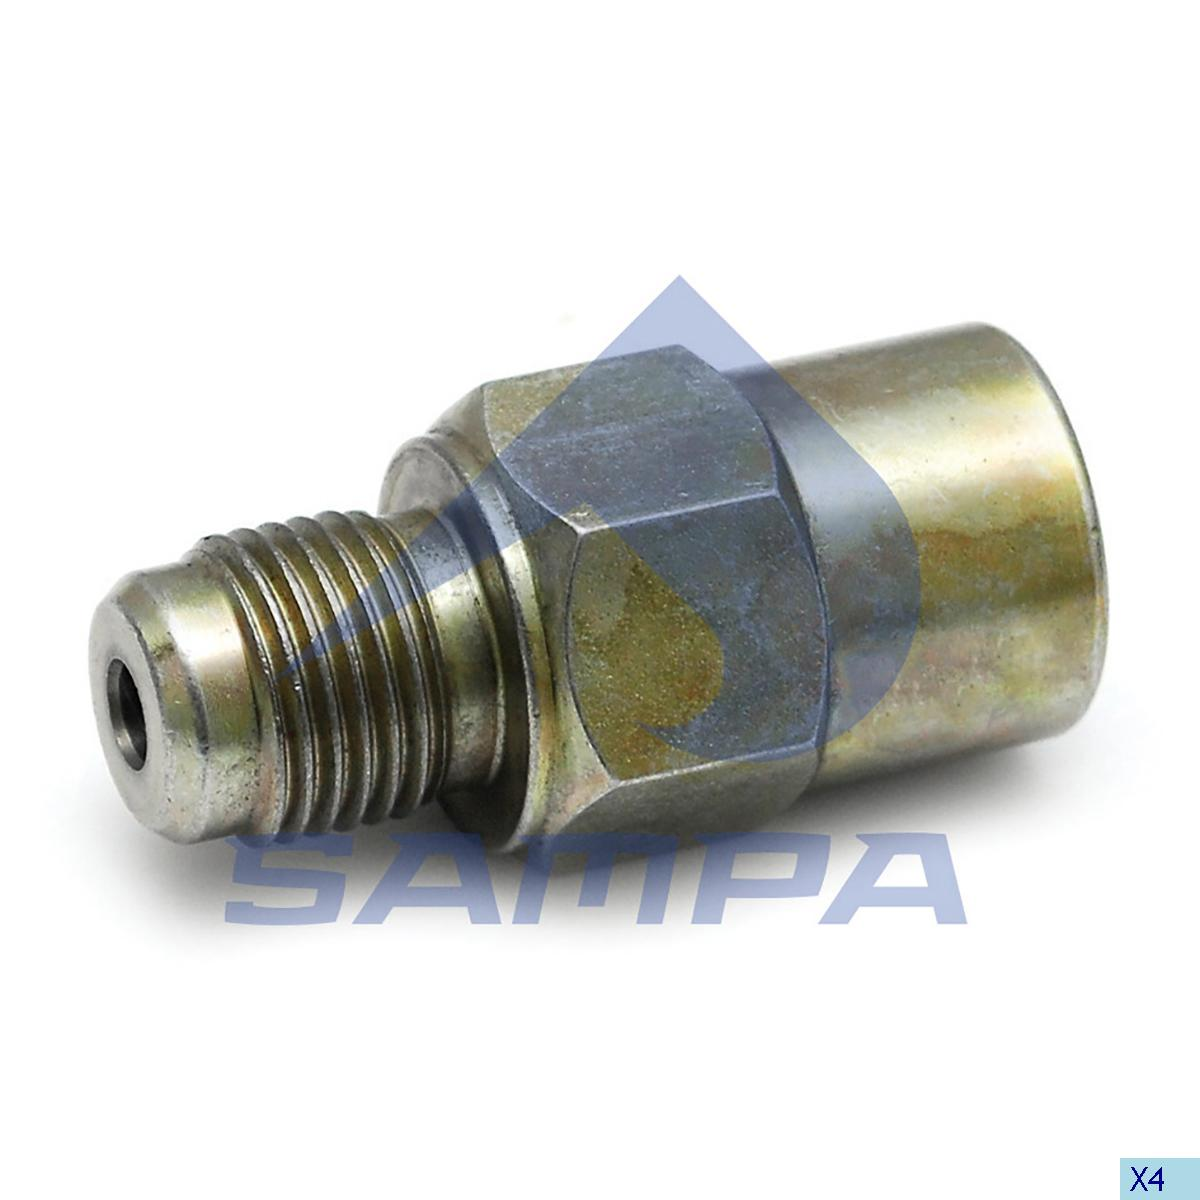 Valve, Injection Pump, Scania, Engine